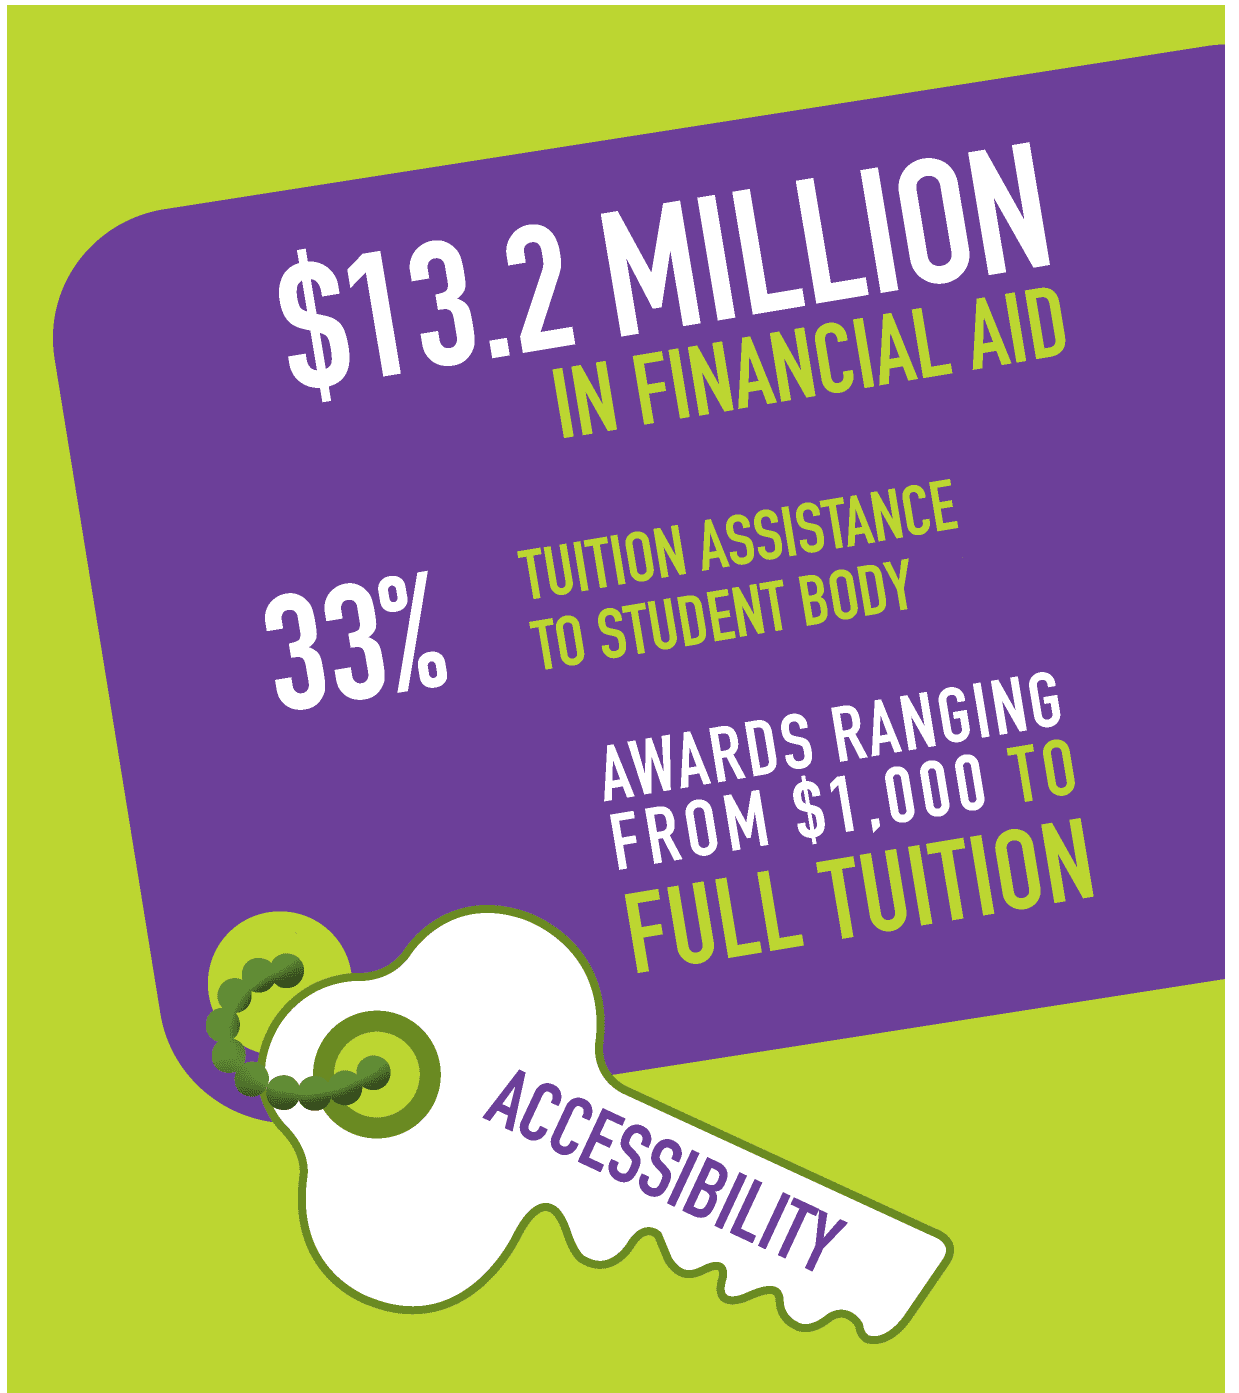 $12.9 million in financial aid. 33% tuition assistance